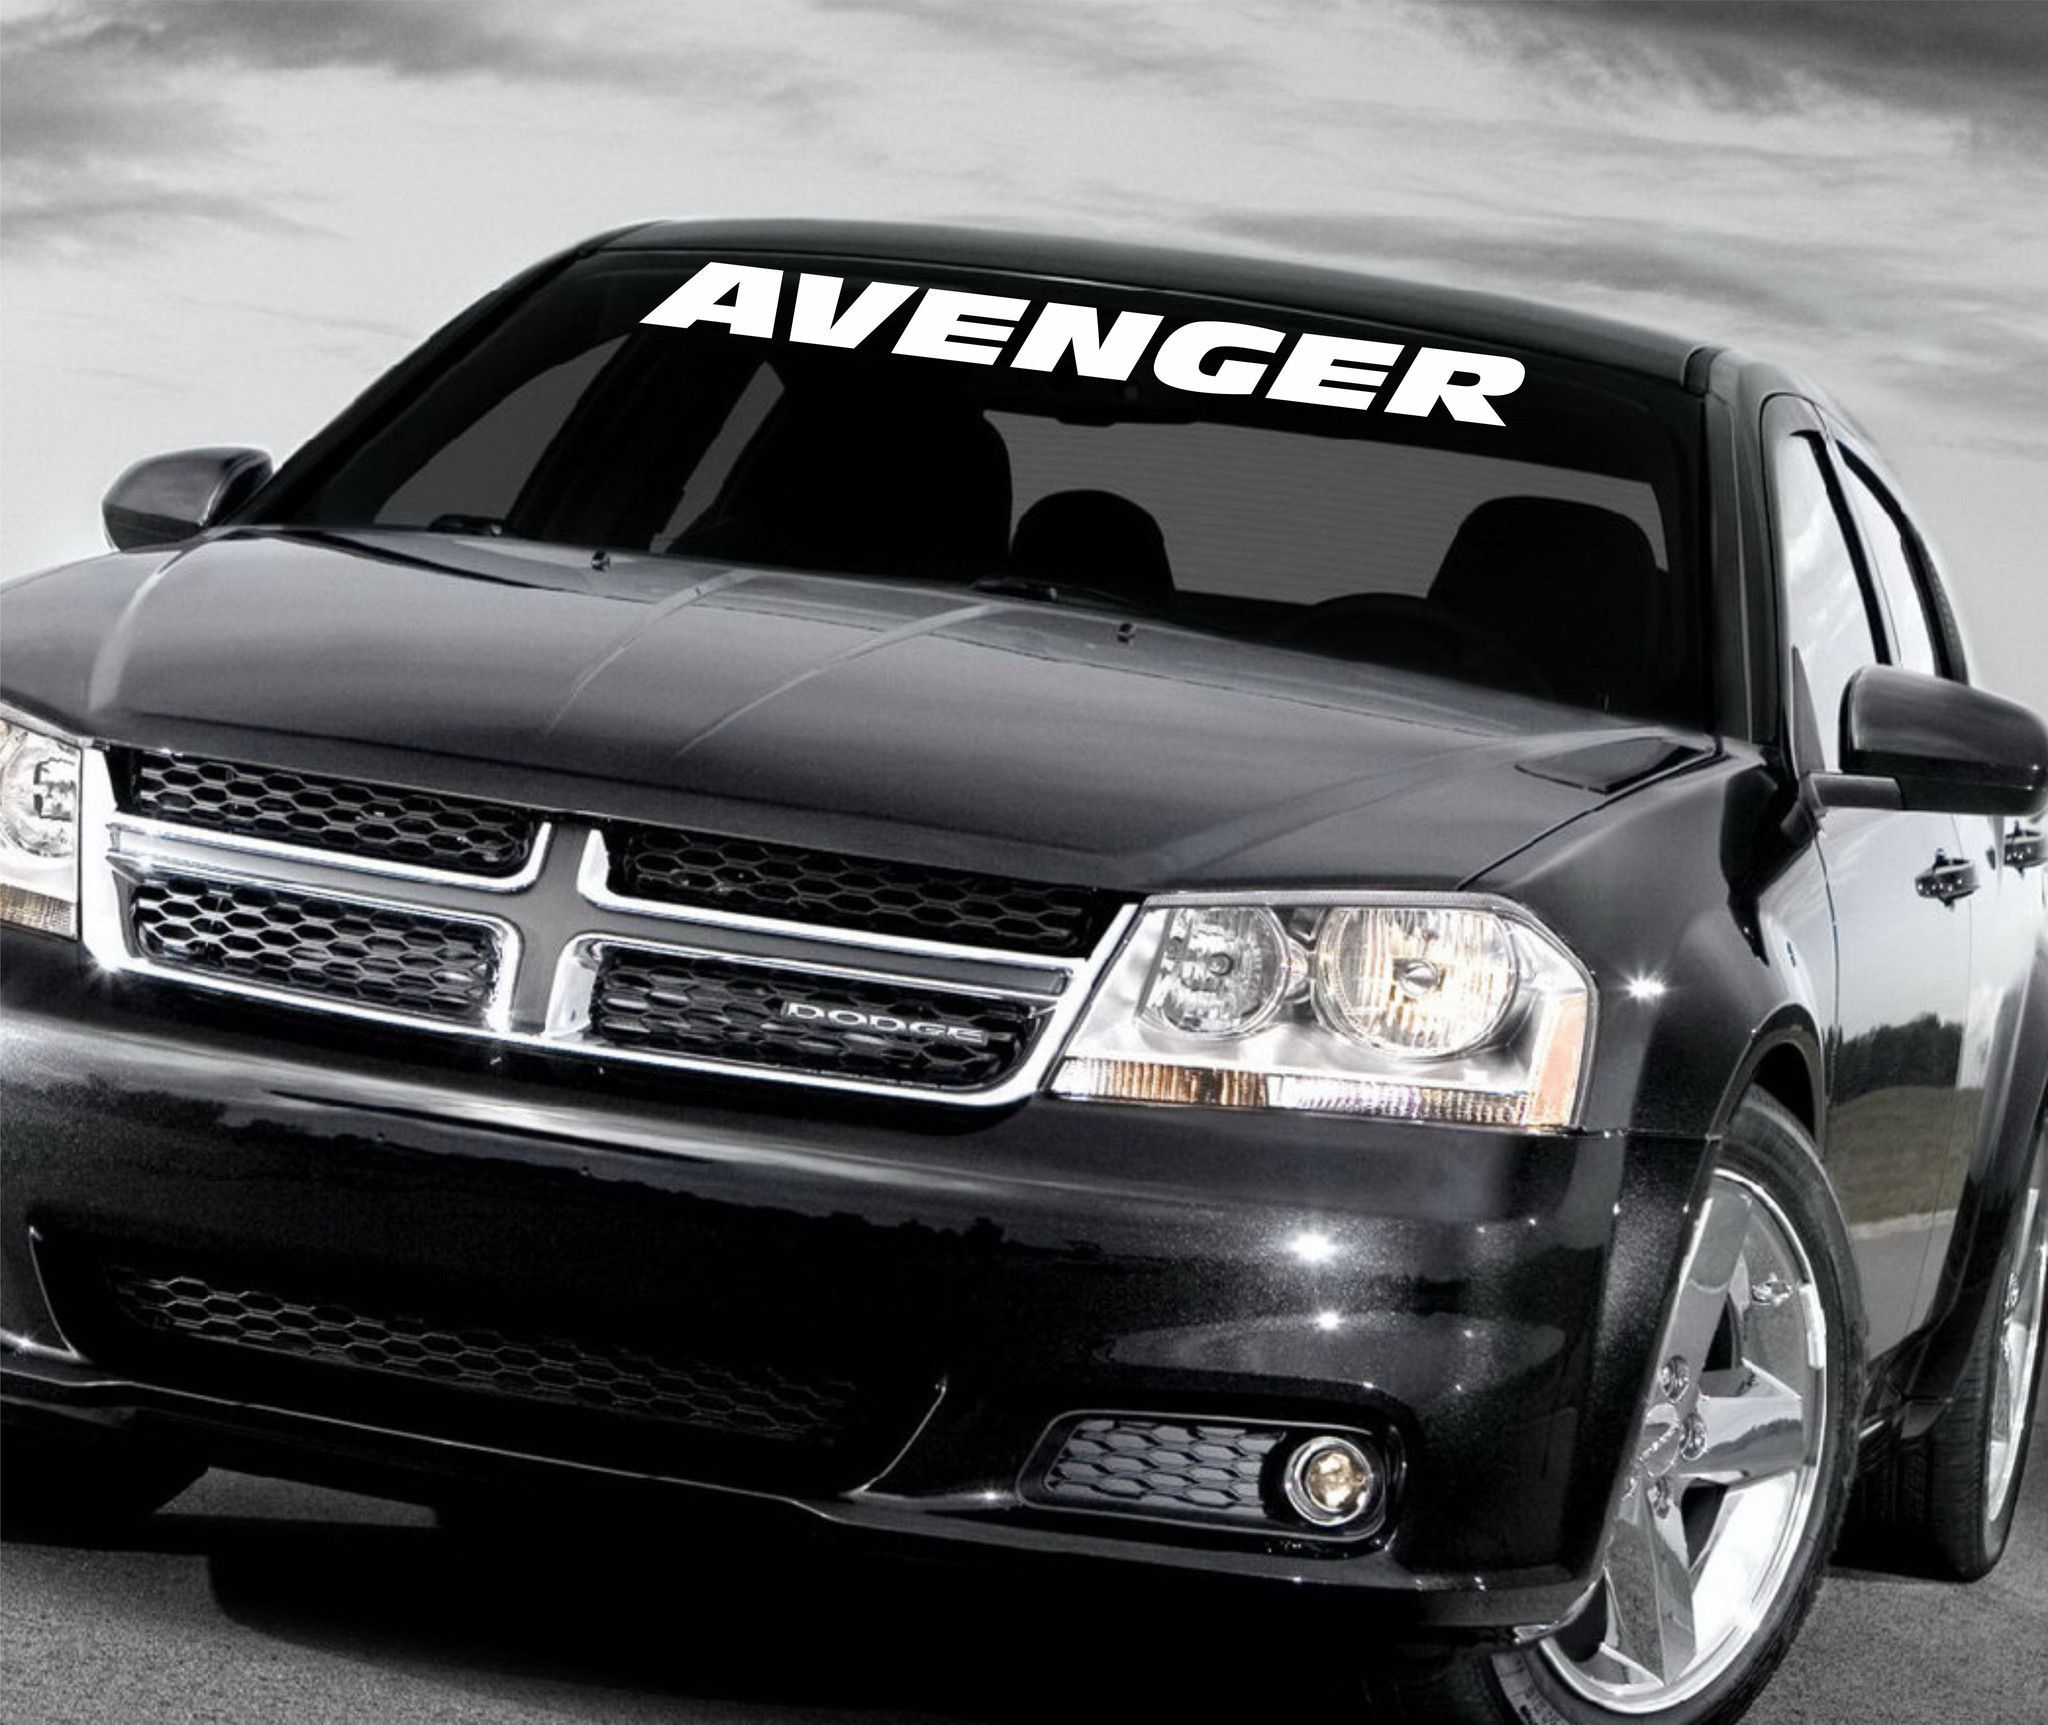 Dodge Avenger Windshield Decal Volkswagen Phaeton Dodge Avenger Dodge